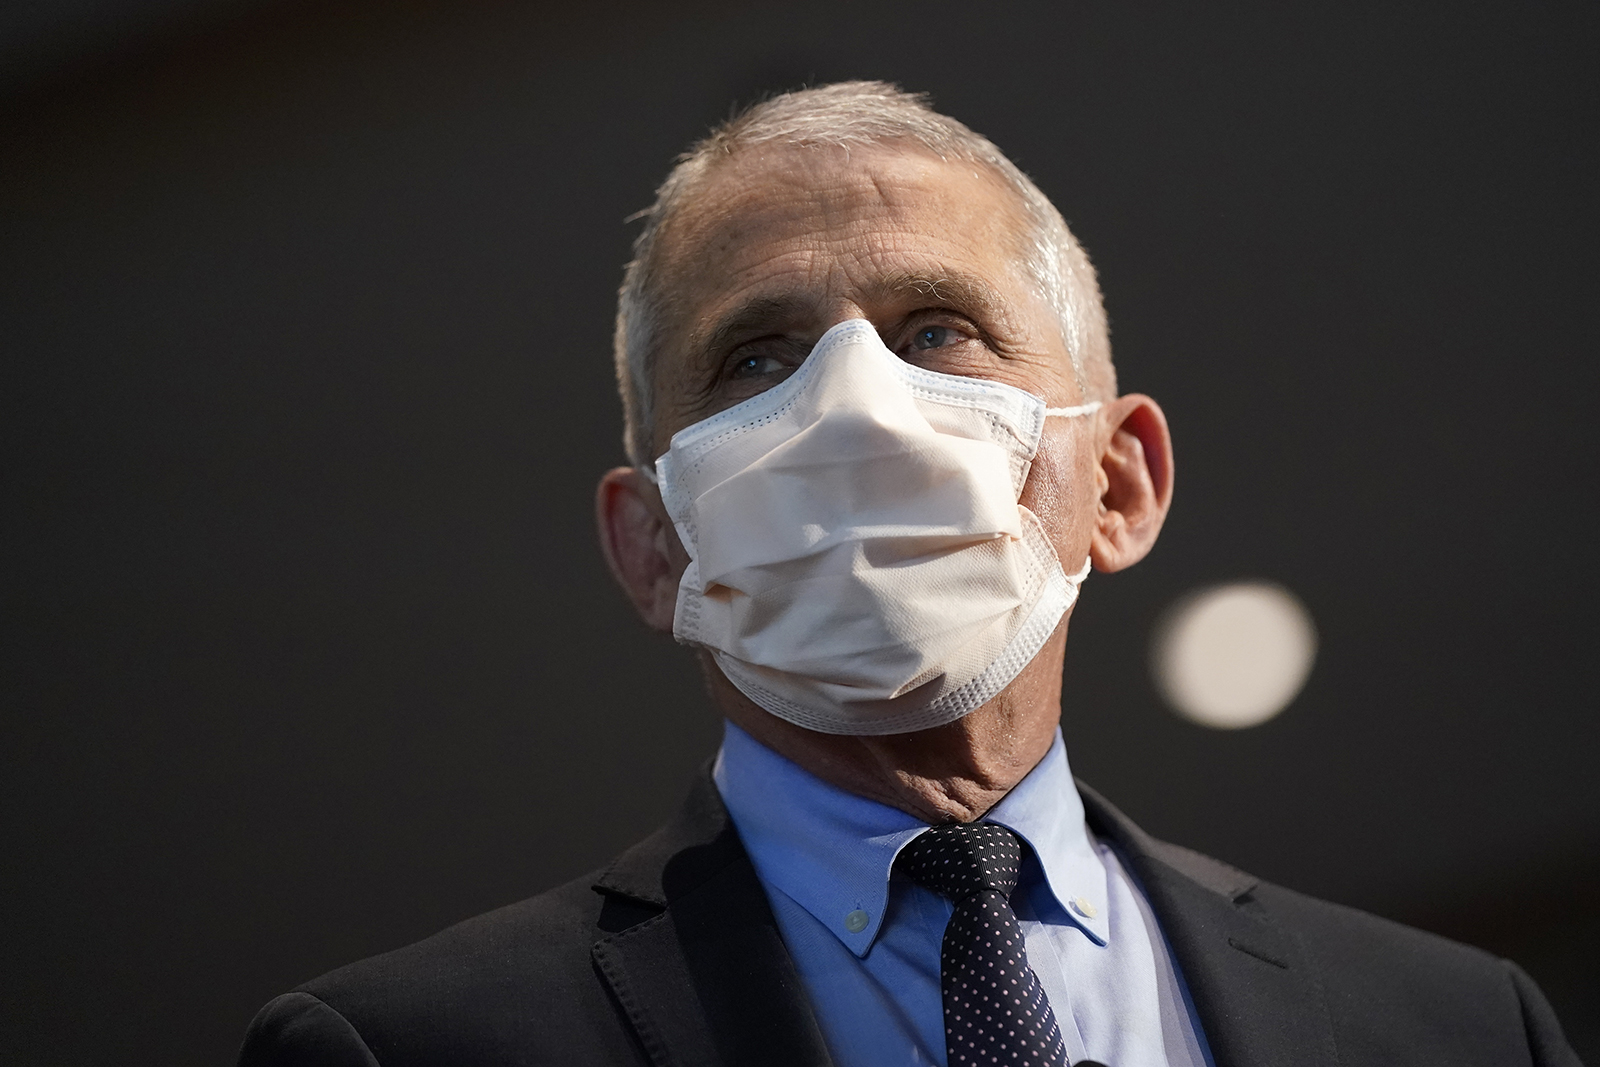 Anthony Fauci, director of the National Institute of Allergy and Infectious Diseases, on December 22, 2020.